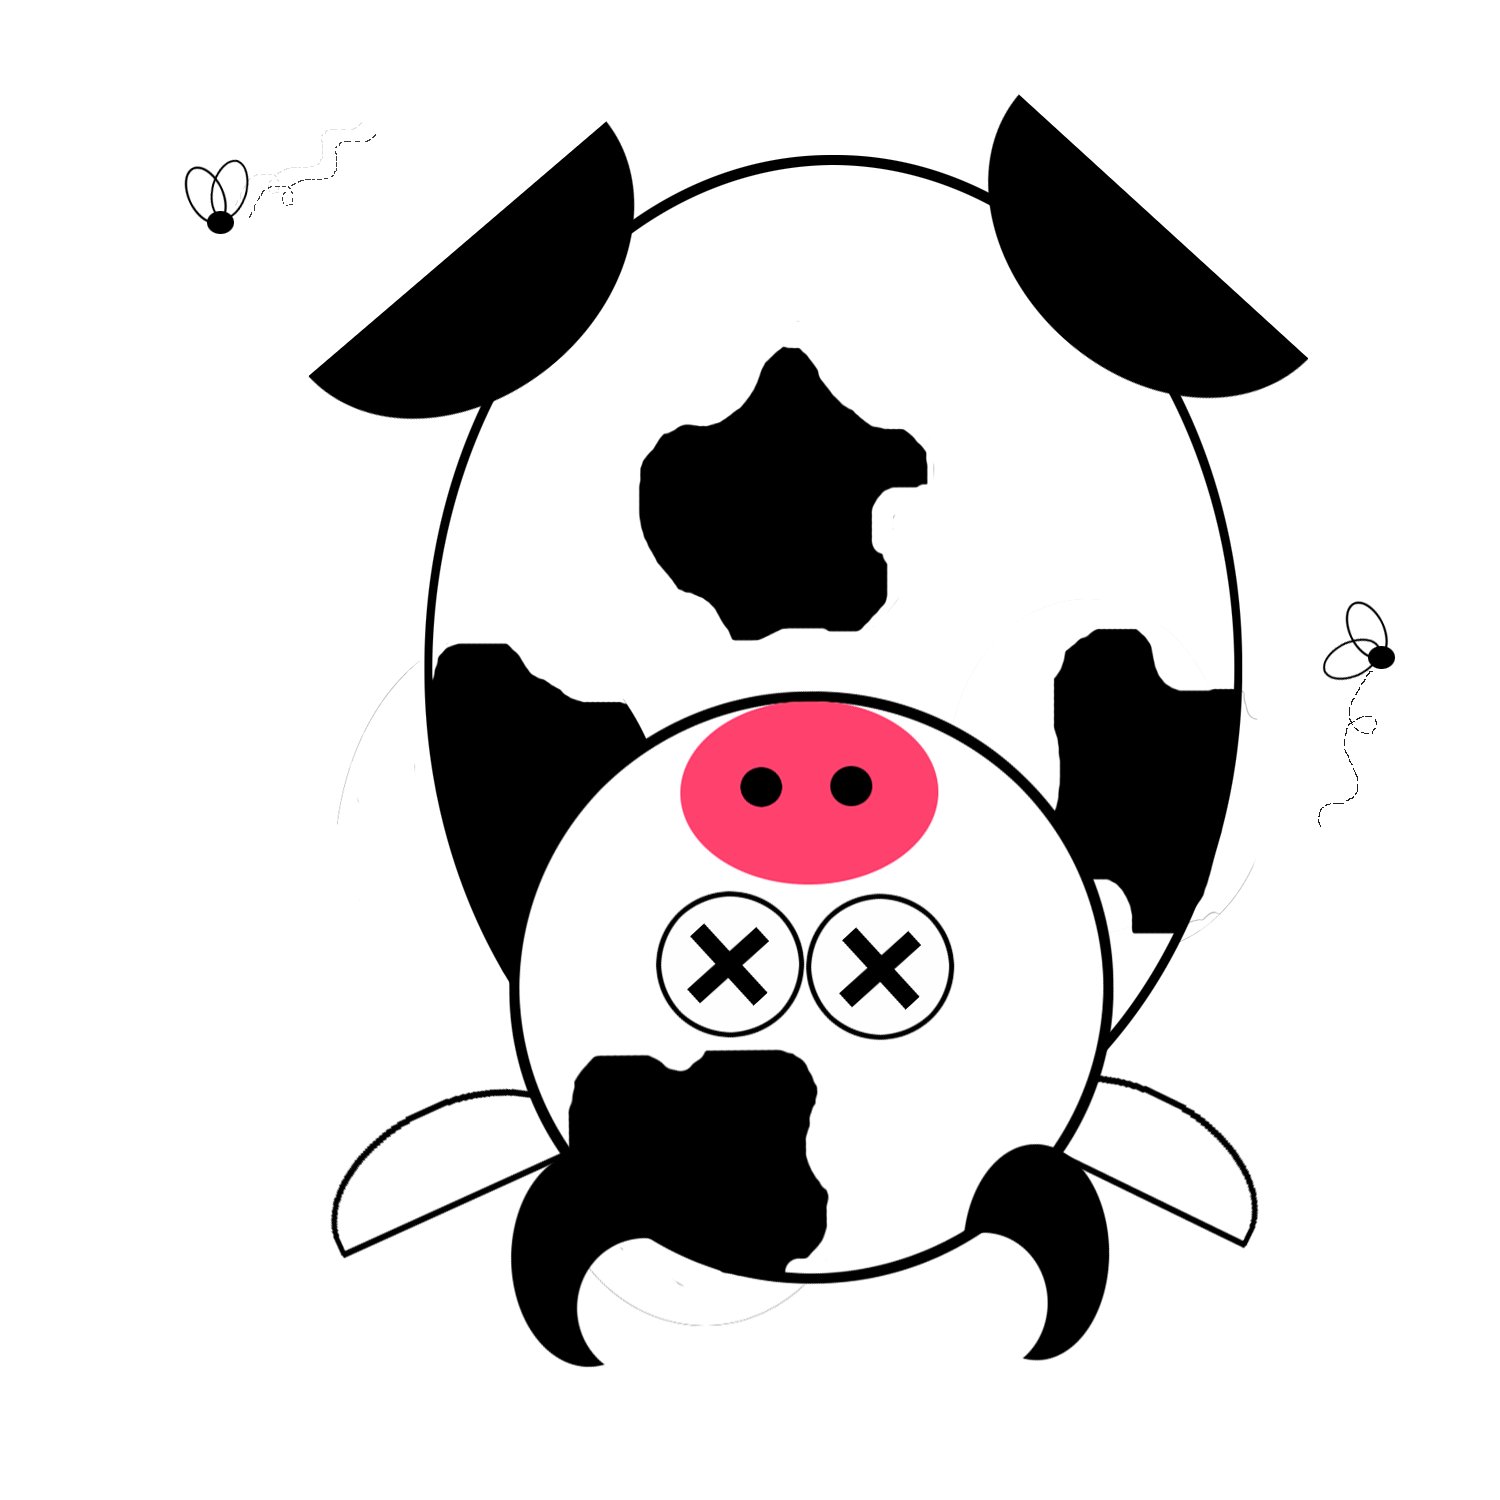 Dead Cow Cartoon   Clipart Best